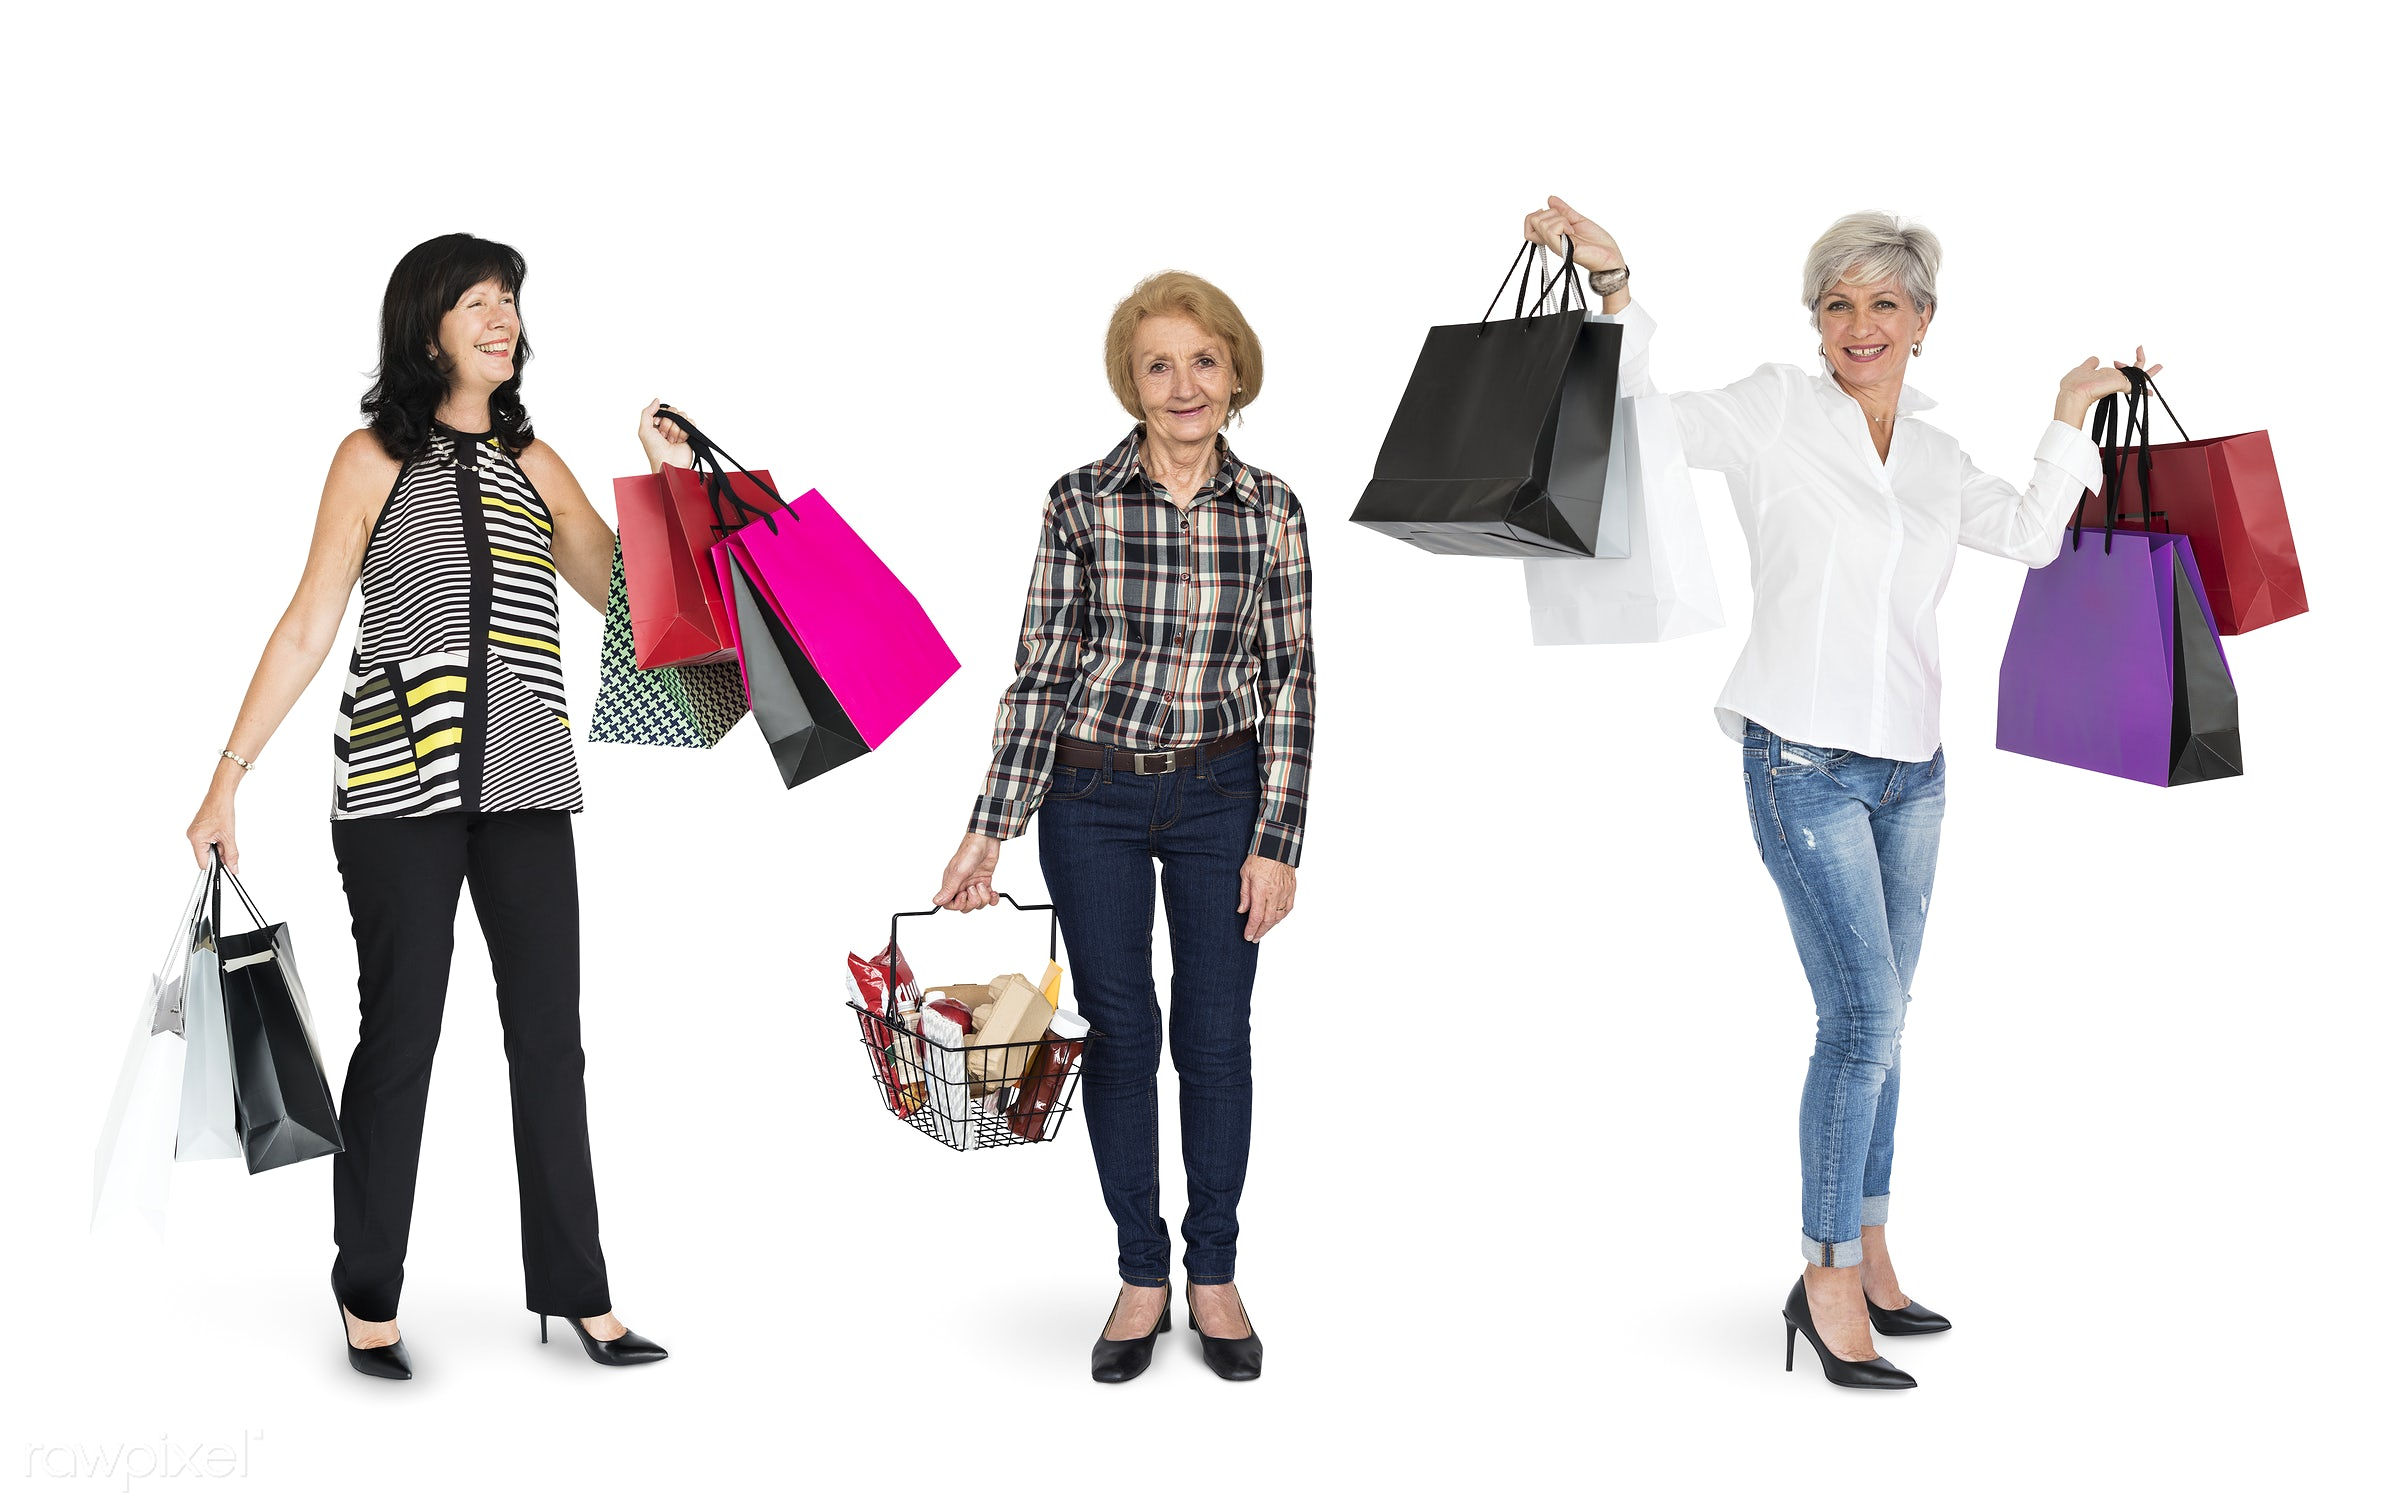 Diverse people set - grocery, expression, studio, face, shop, person, buy, people, life, style, woman, lifestyle, mixed,...